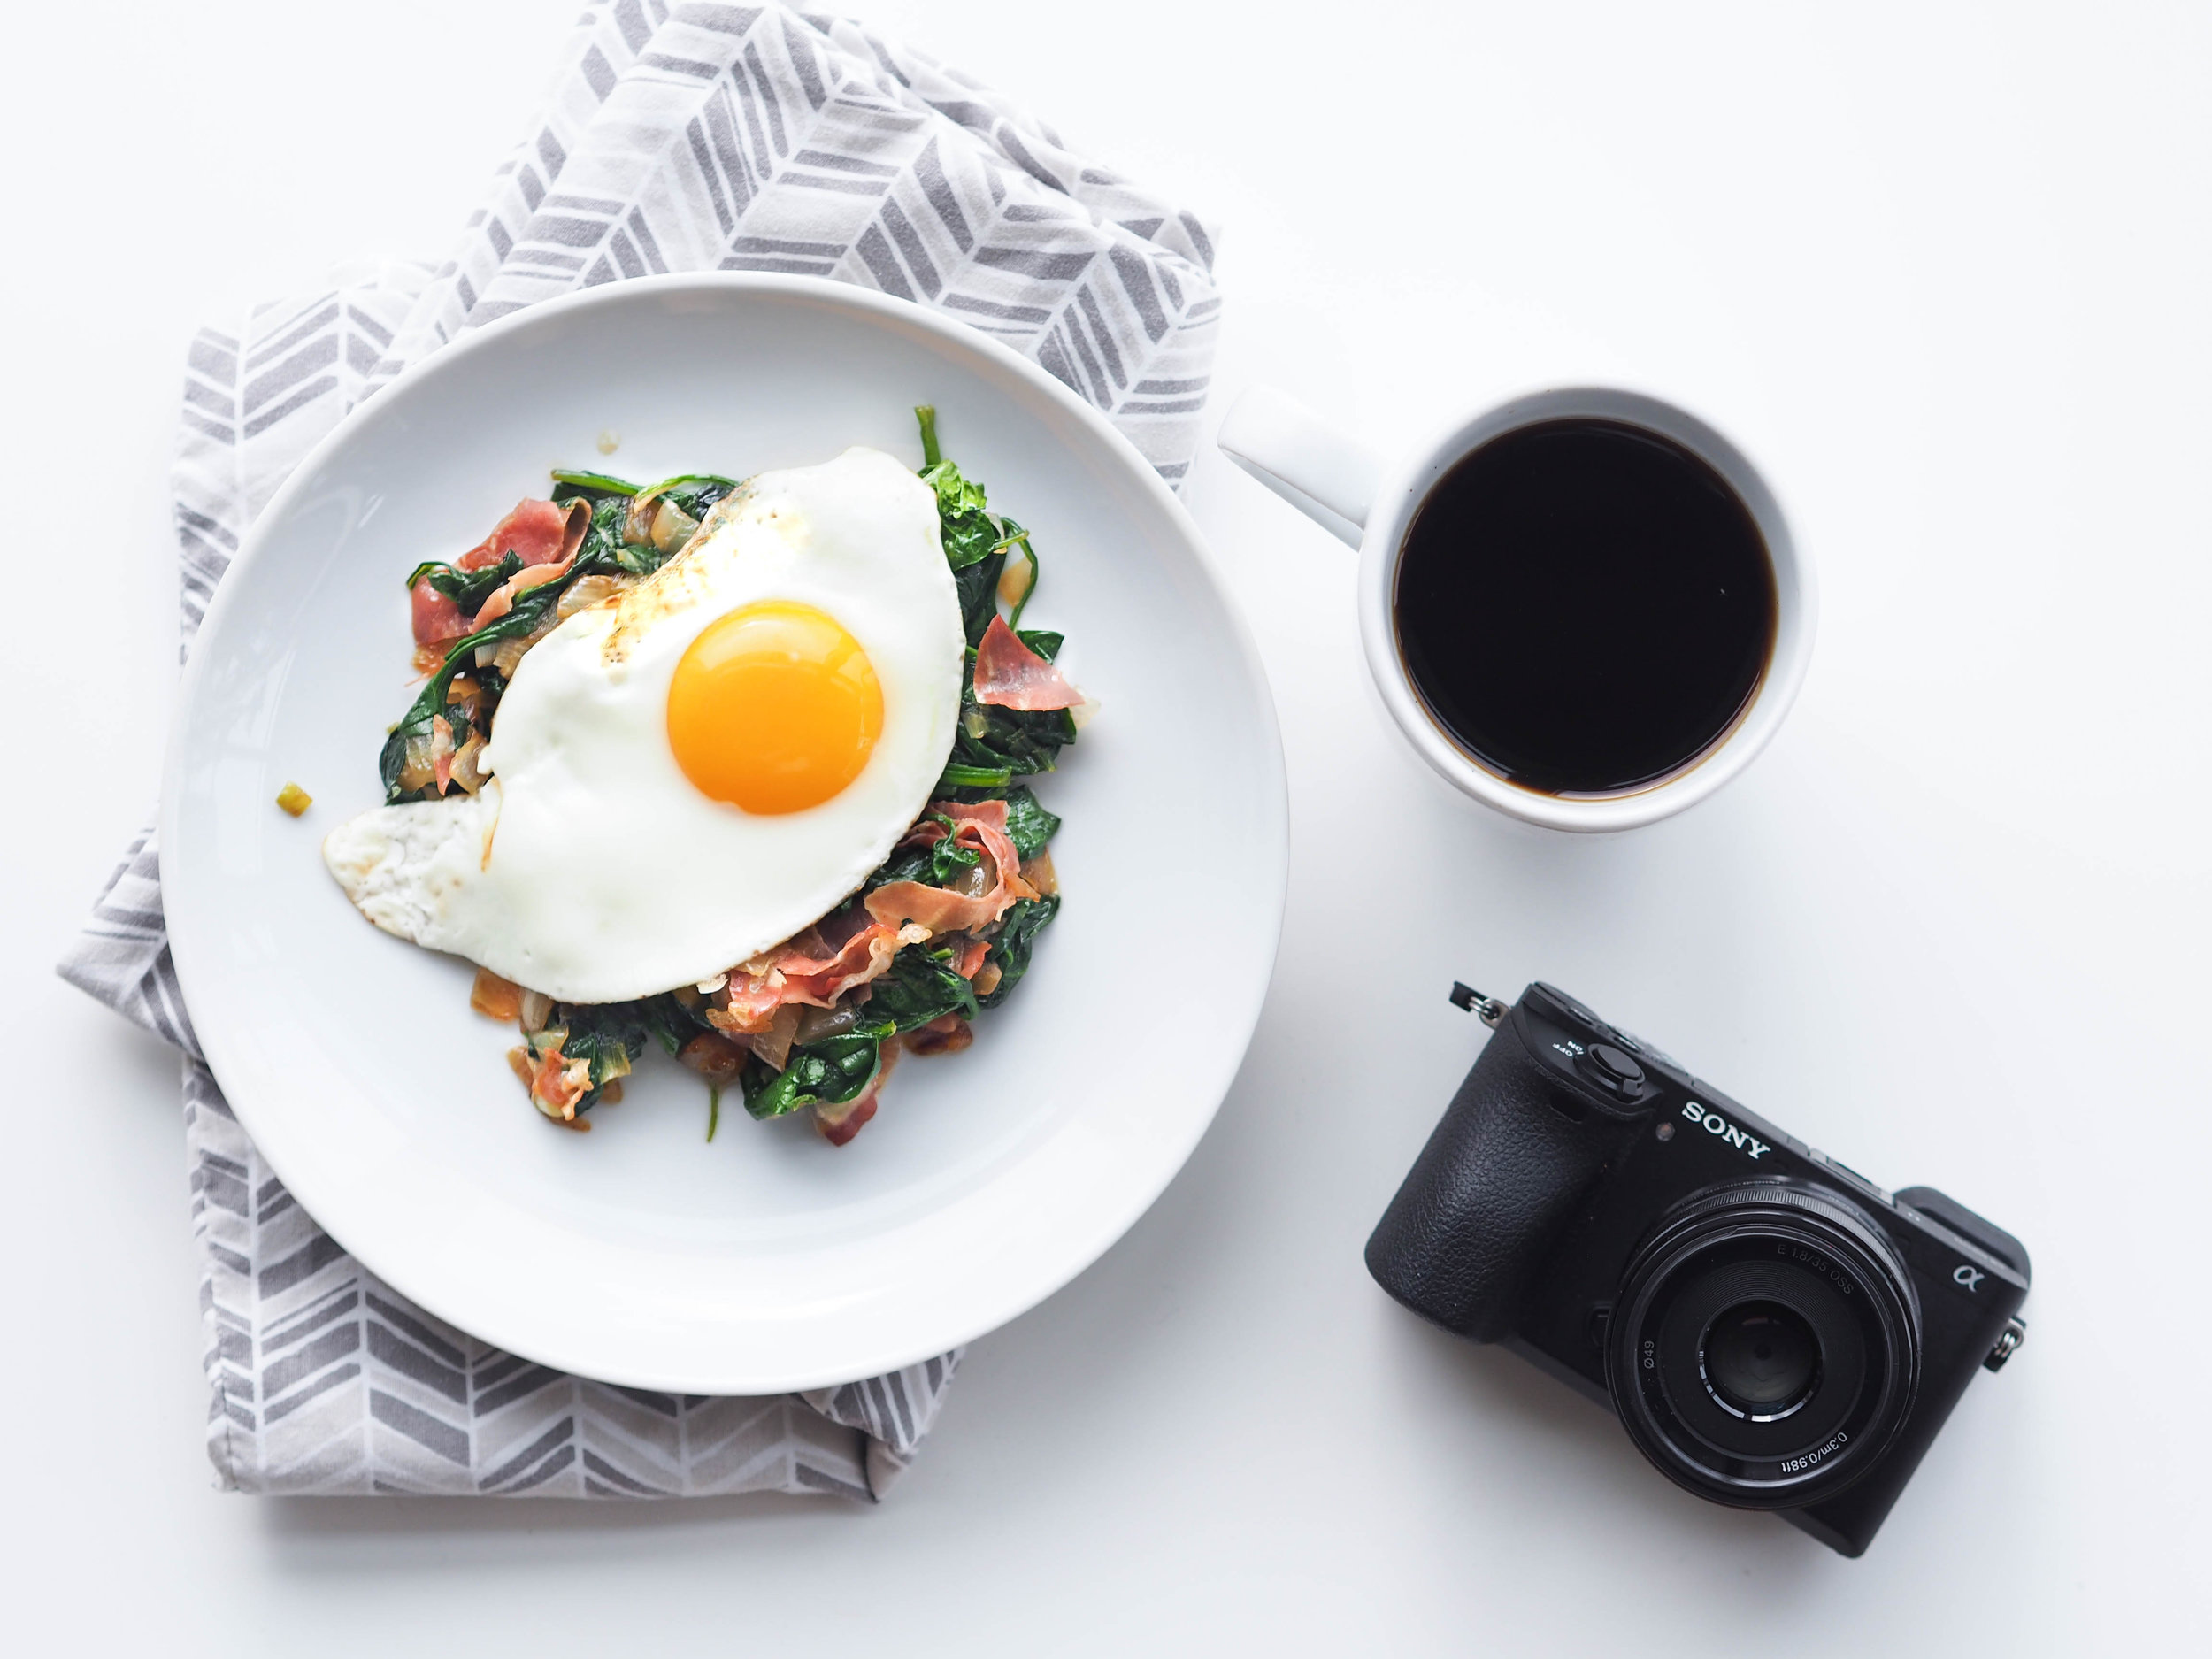 Sauteed-Spinach-and-A-Sunny-Egg.jpg